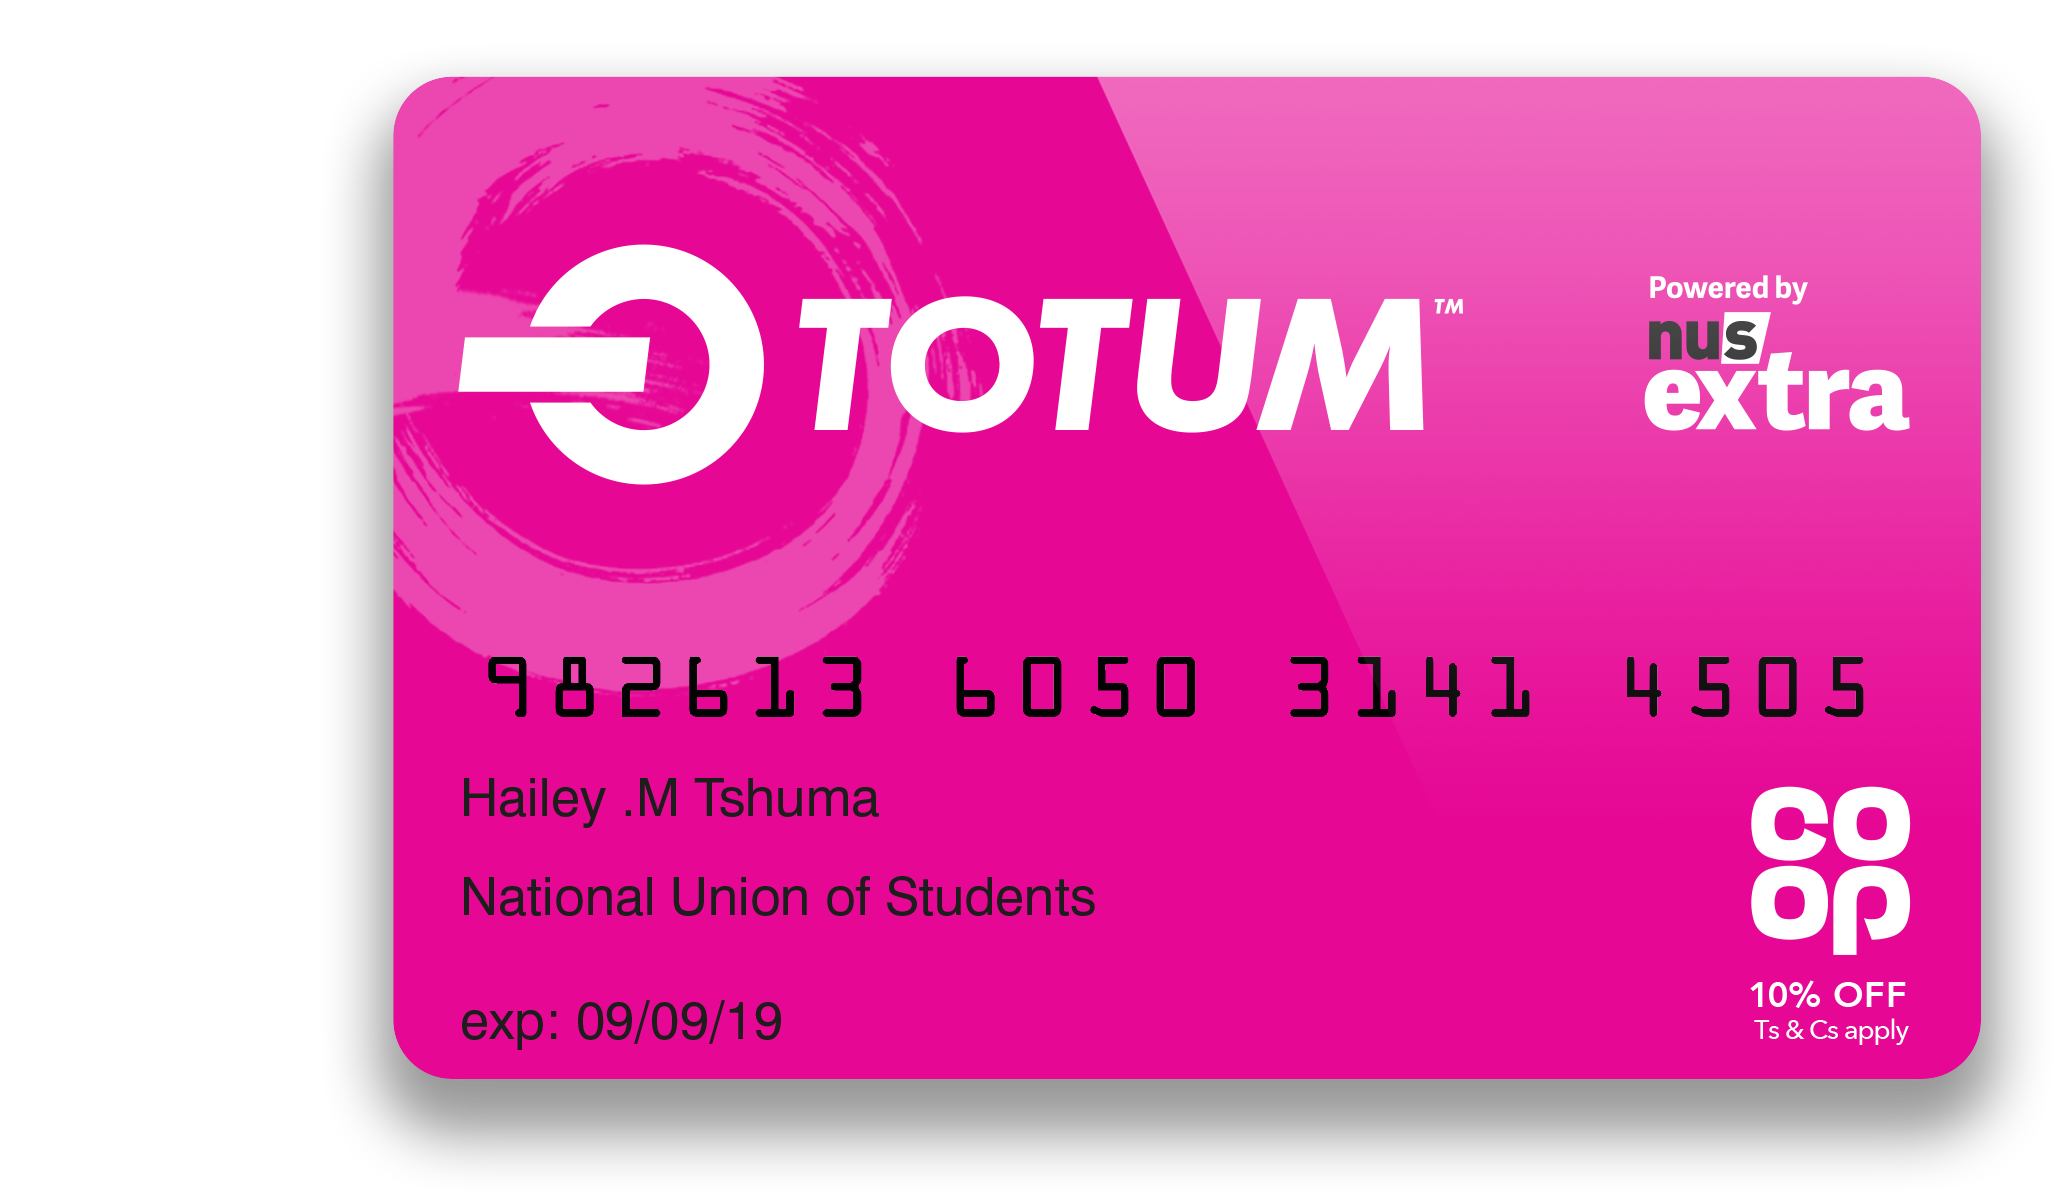 As an Aspect student, you can apply    here    for an NUS Totum student discount card.